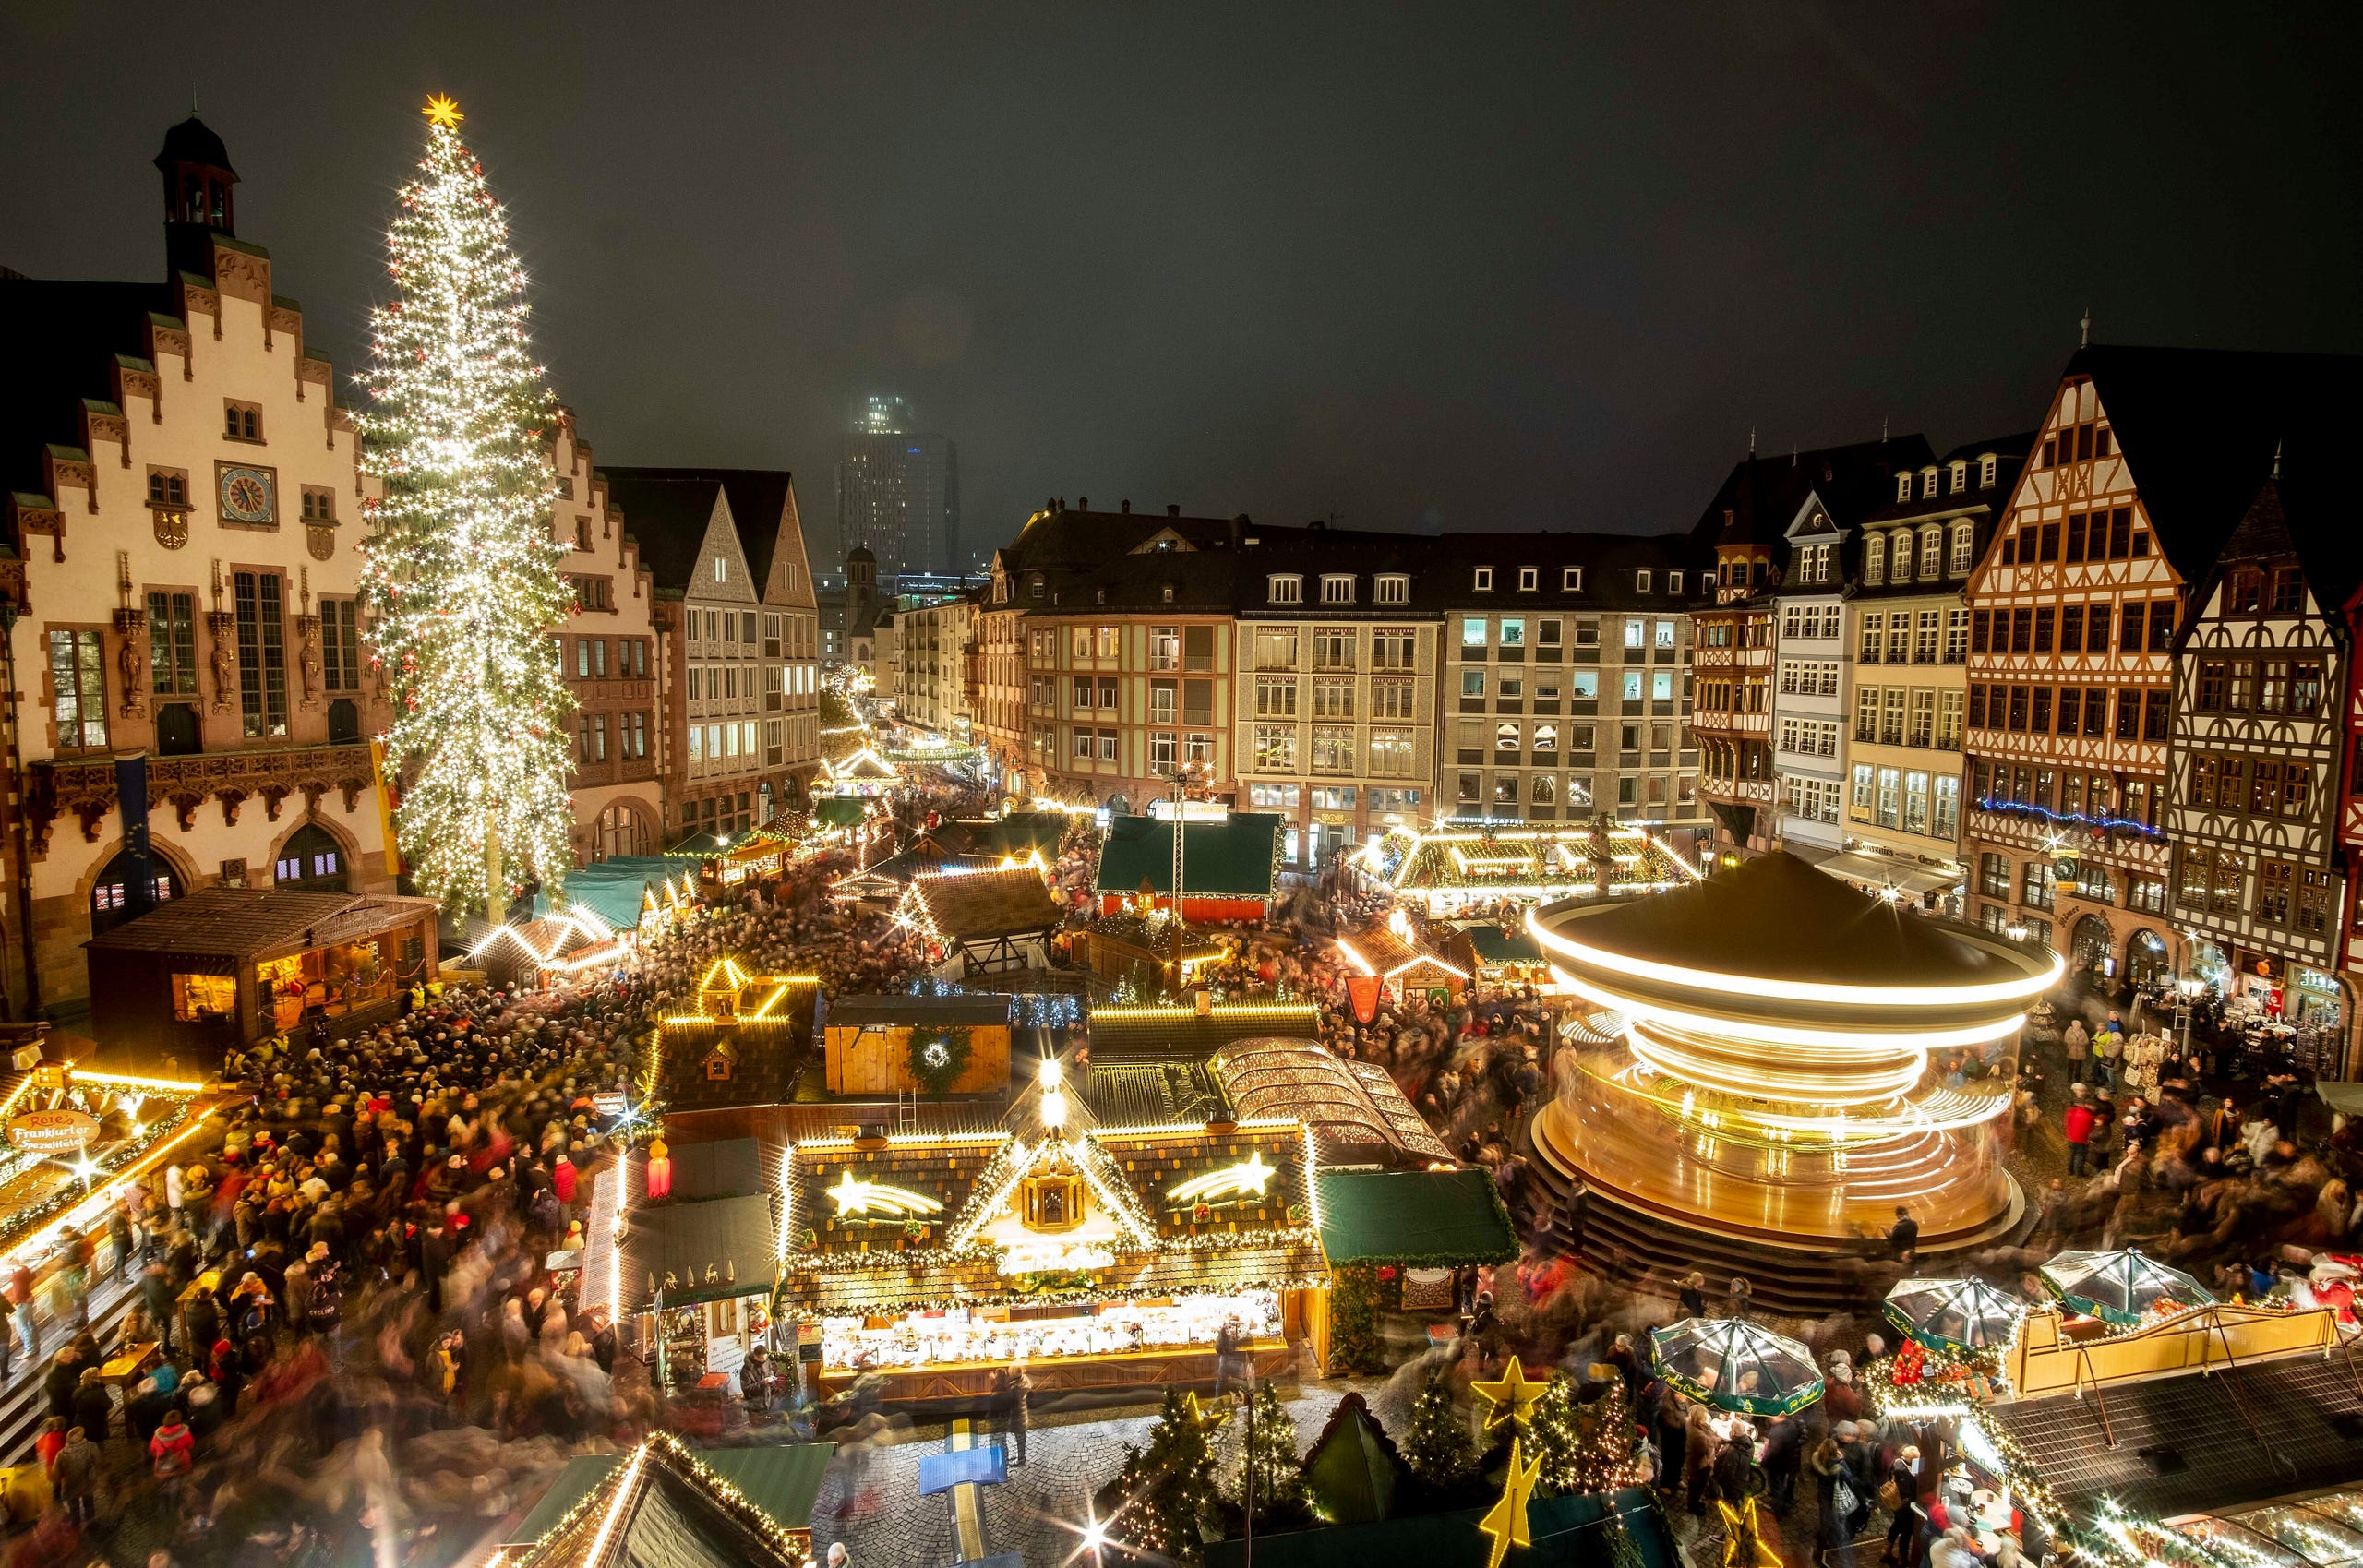 German Christmas markets kick off